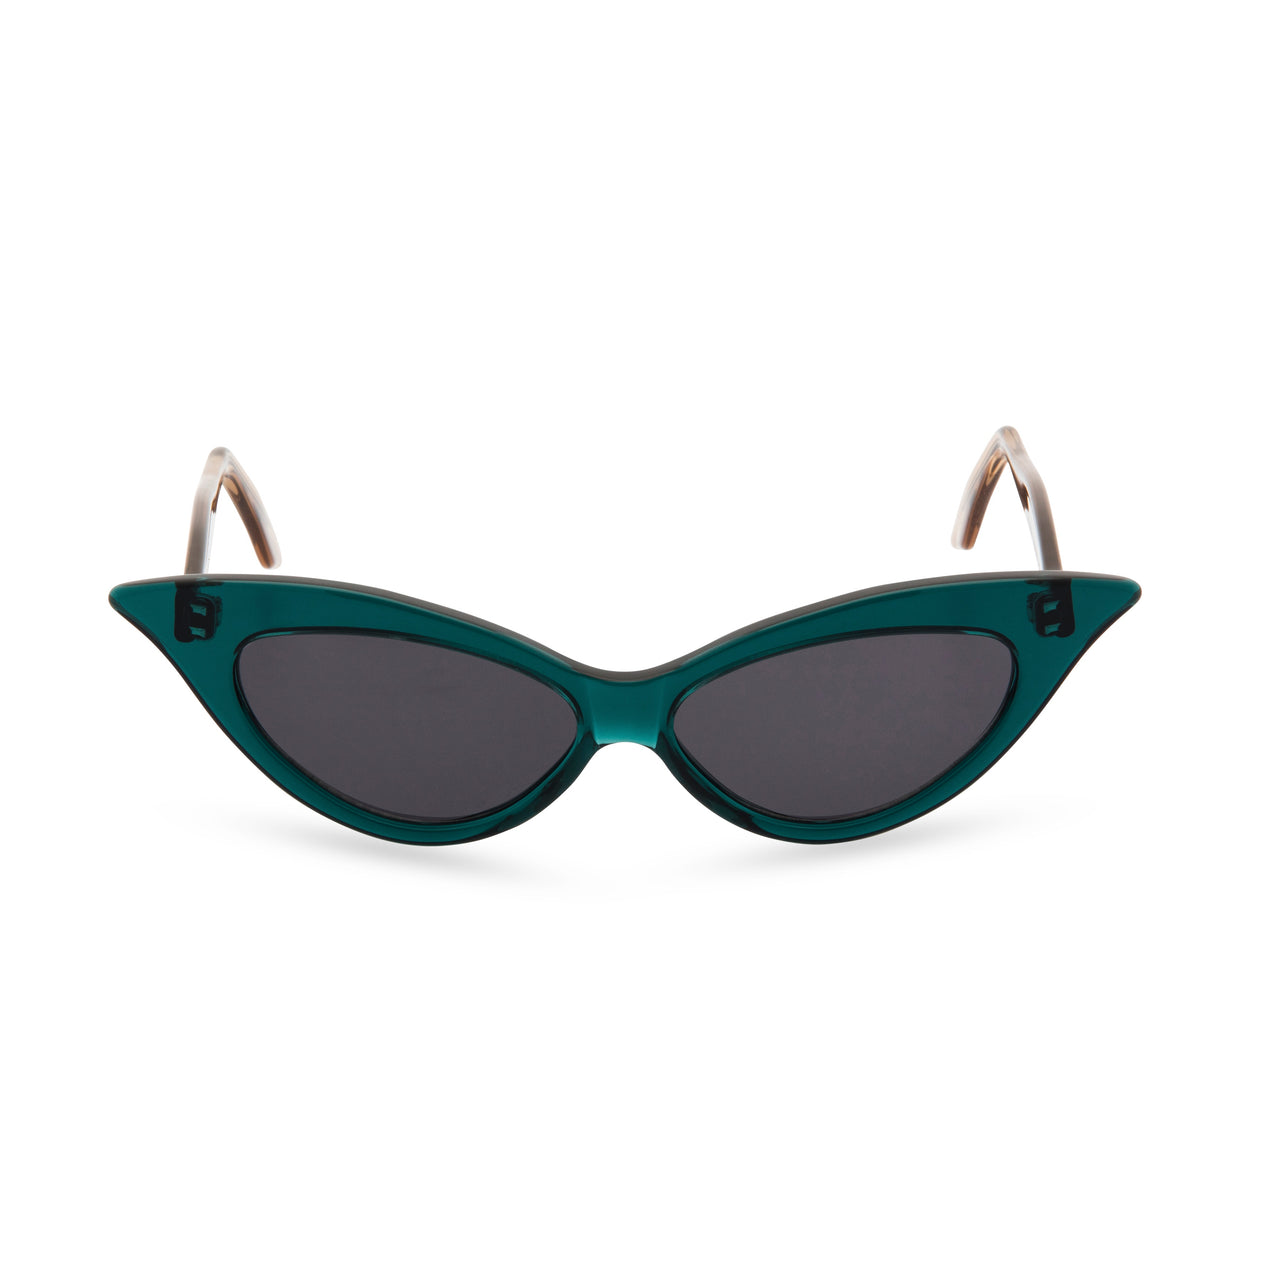 Juliette - Sunglasses Green Gold